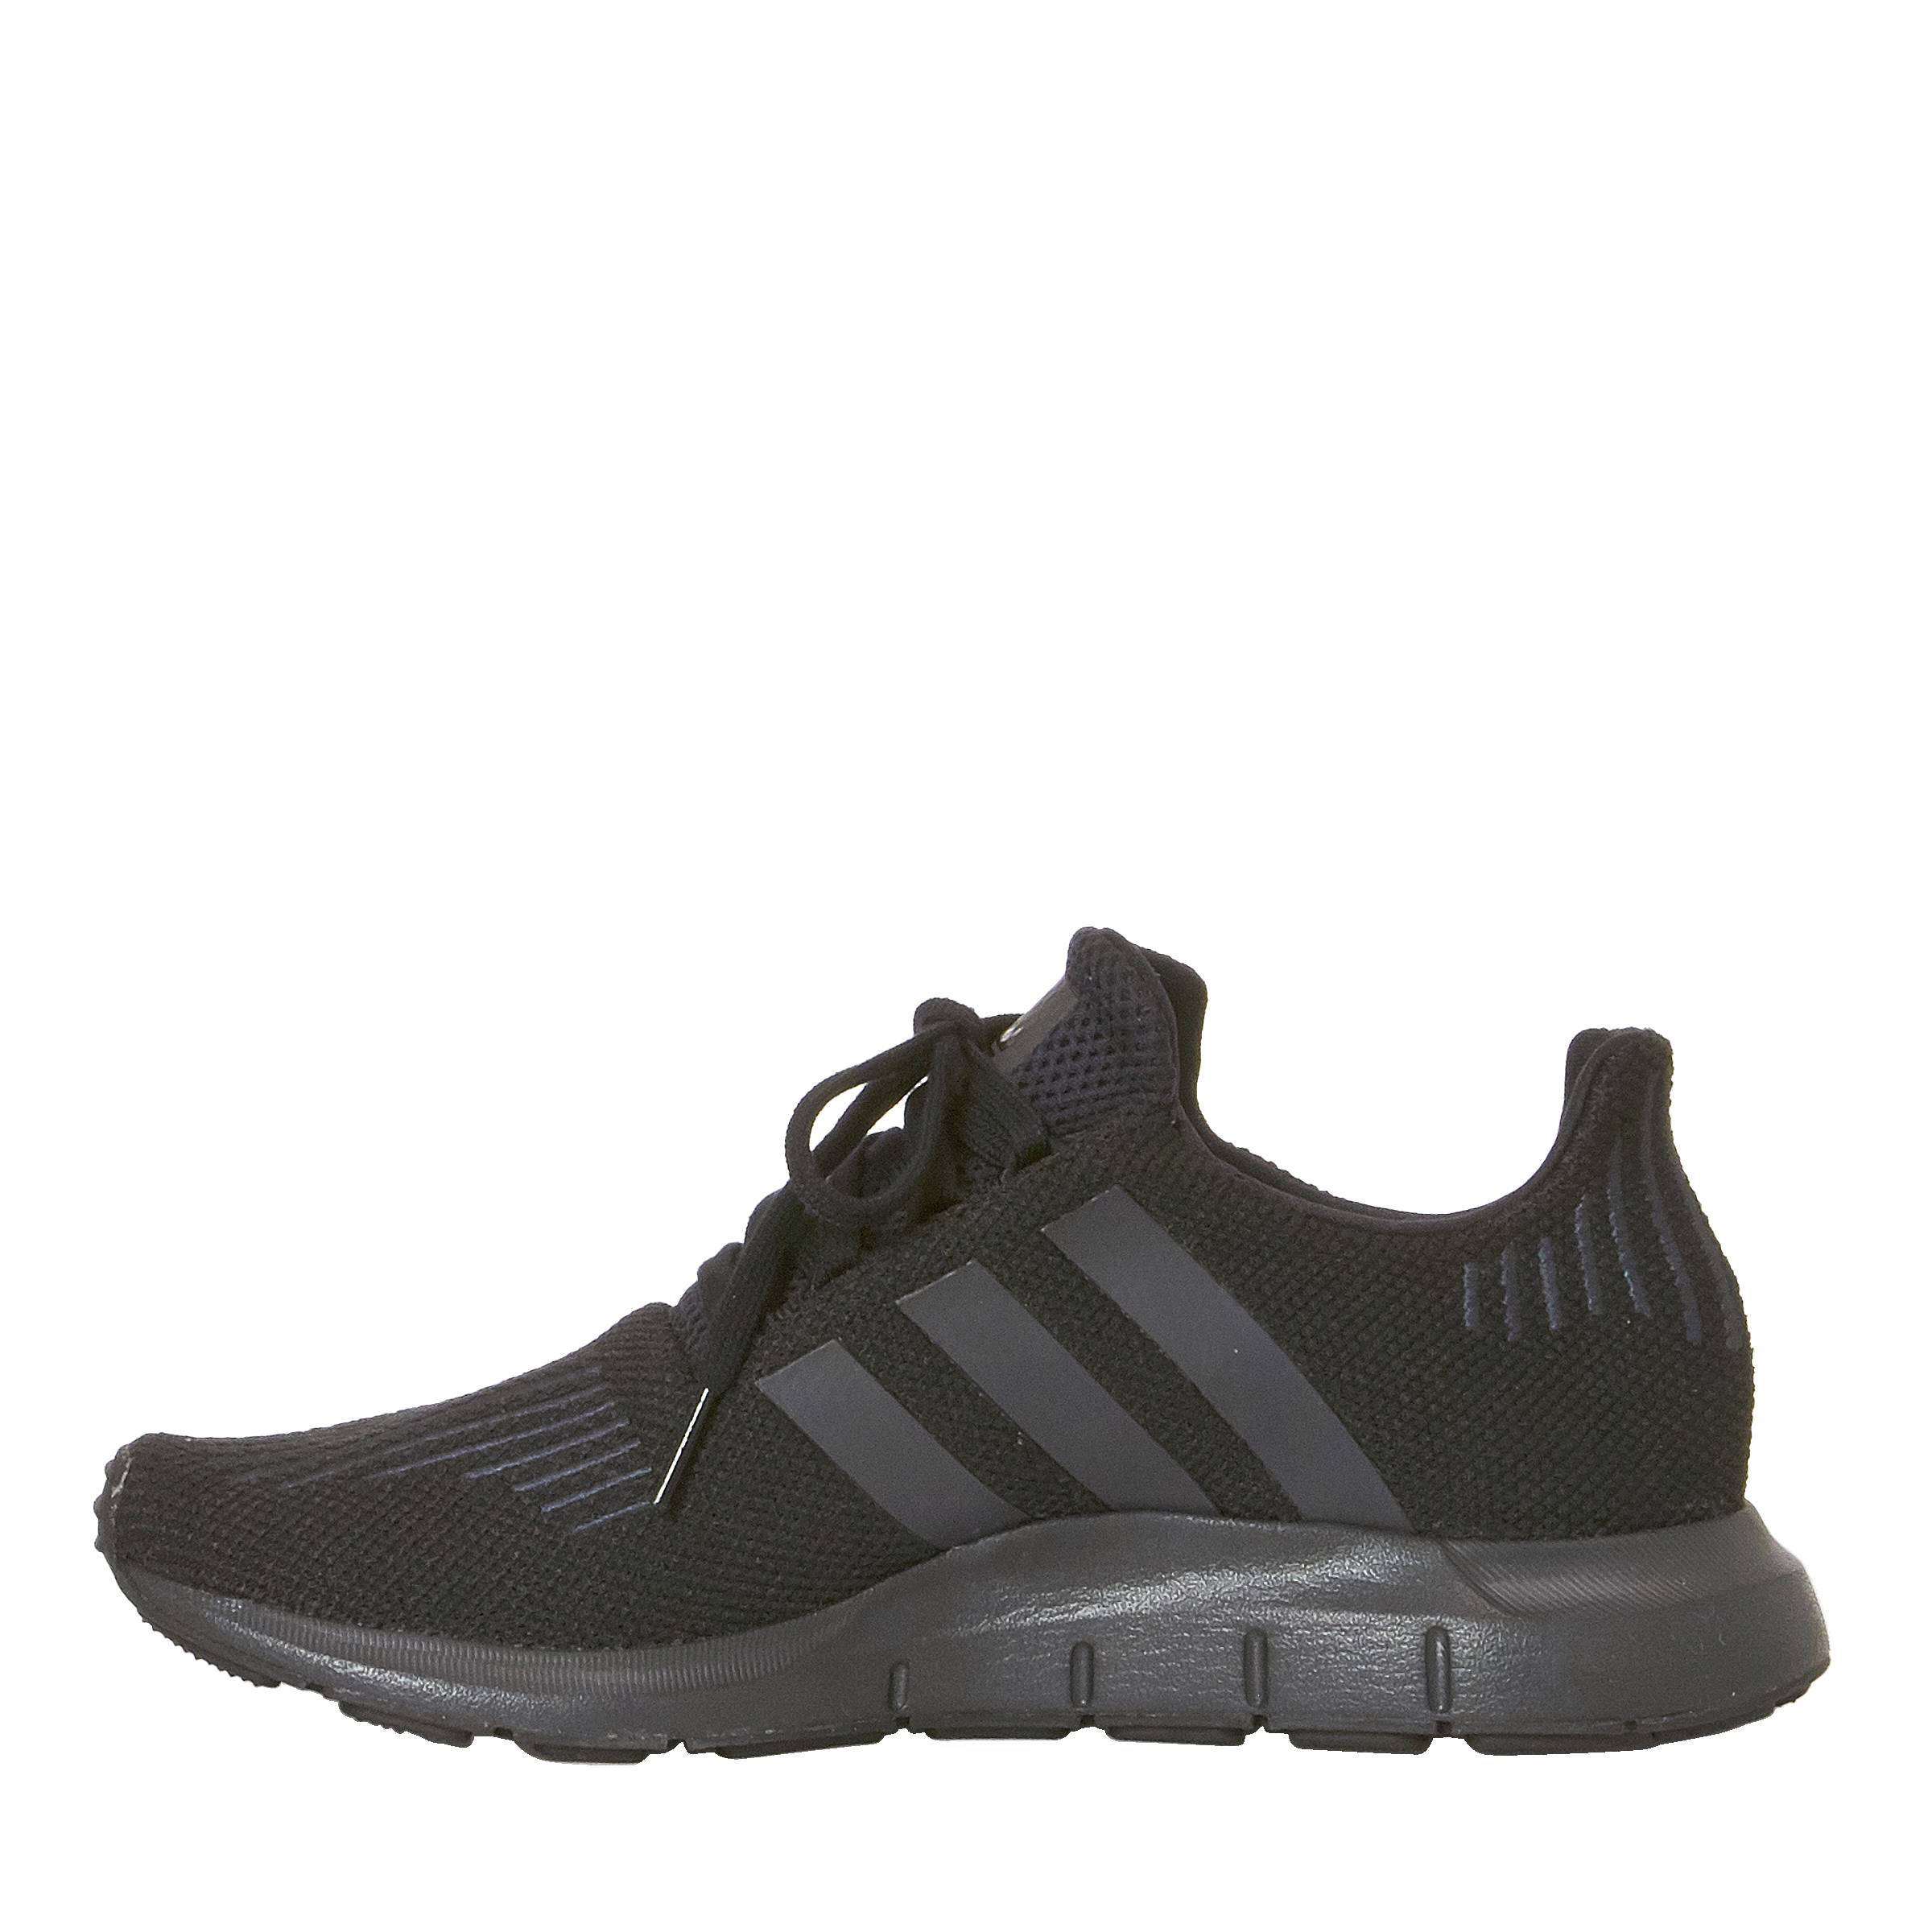 1db27d13d64 adidas originals Swift Run J sneakers | wehkamp